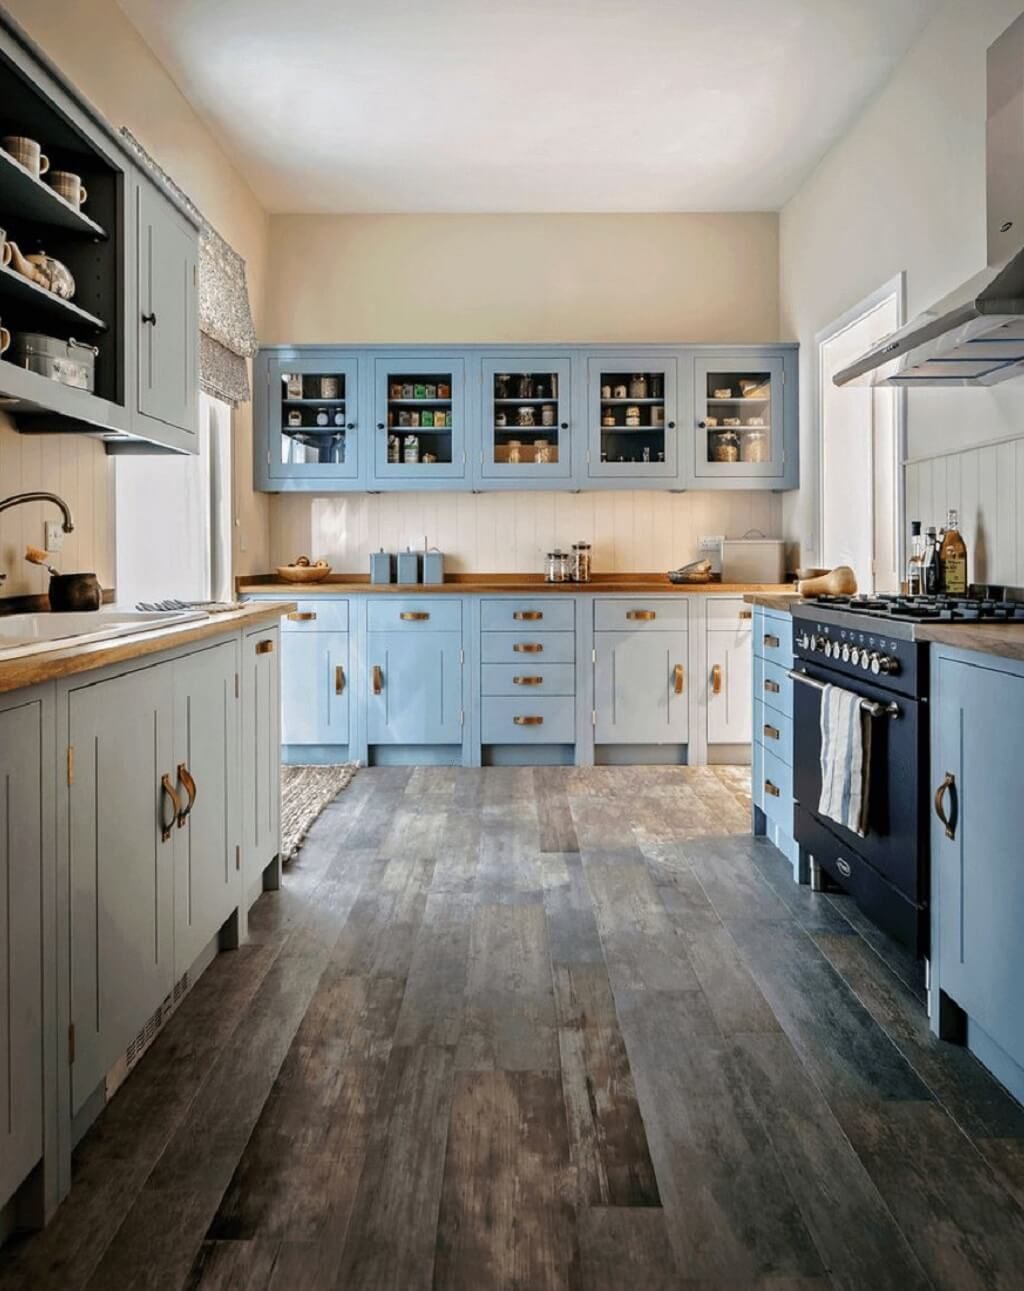 35 Farmhouse Kitchen Cabinet Ideas To Create A Warm And Welcoming Kitchen Design In Your Home Country Kitchen Designs Light Blue Kitchens Farmhouse Kitchen Design